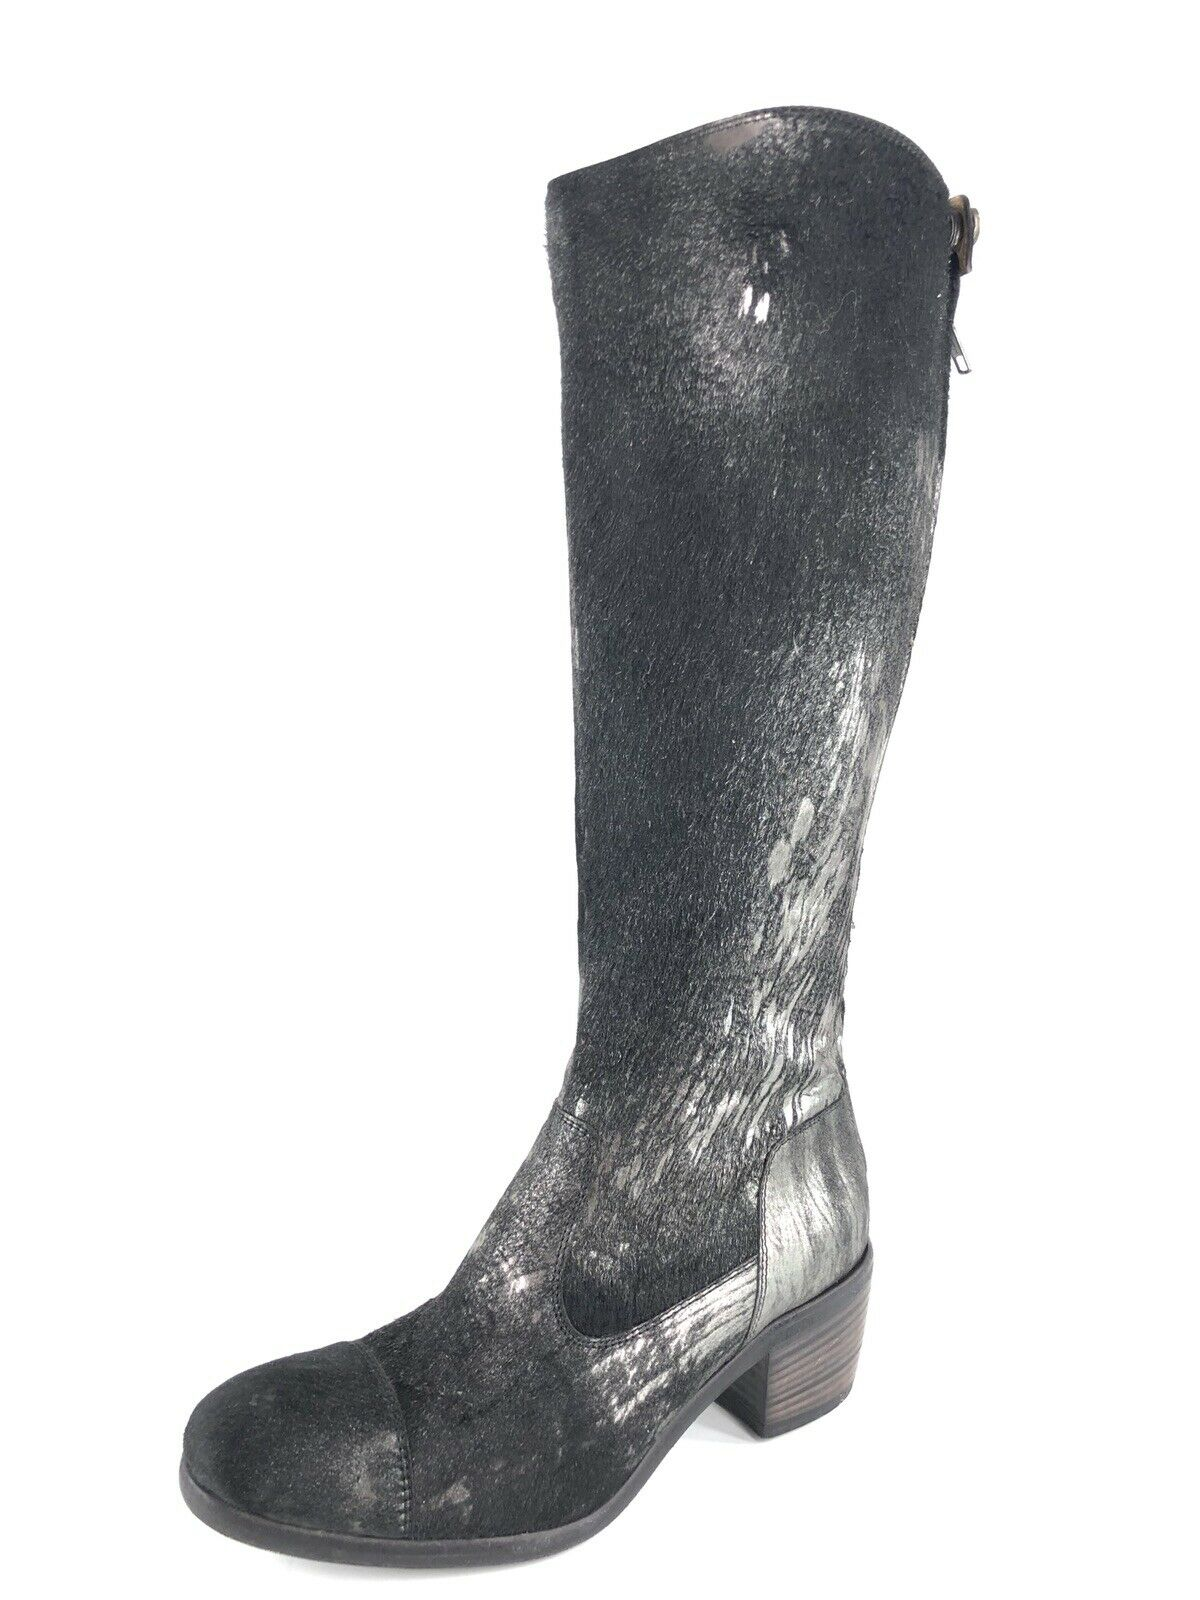 FRYE Felicity Women's Black Metallic Calf Hair Tall Leather Boots Size 6.5 M